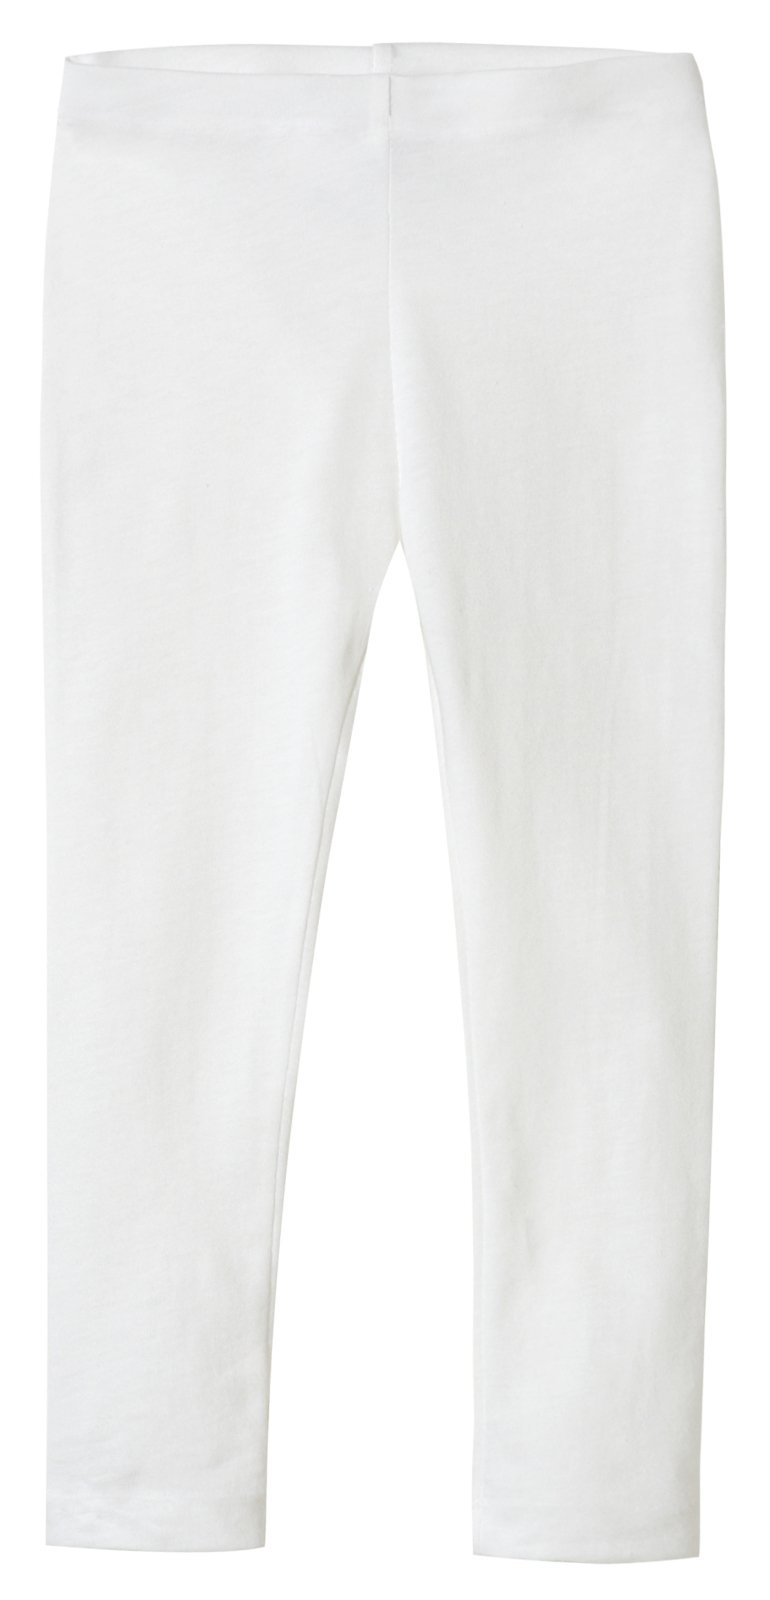 City Threads Girls' Leggings 100% Cotton for School Uniform Sports Coverage or Play Perfect for Sensitive Skin or SPD Sensory Friendly Clothing, White, 7